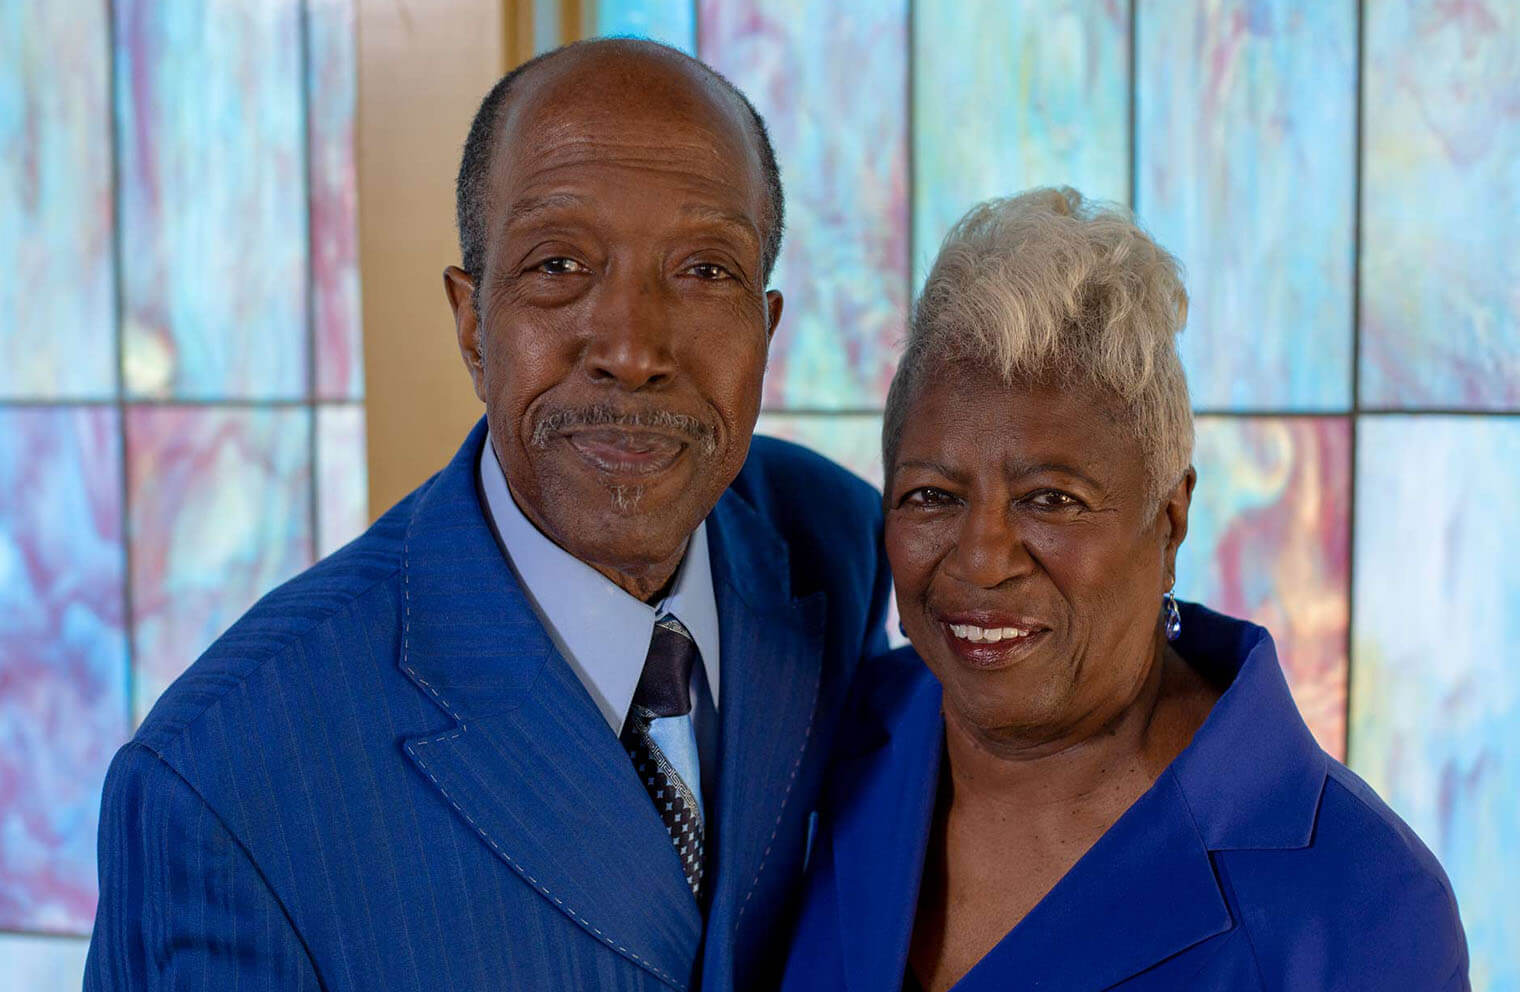 2021-01-26 Article: Riches of the Gospel, Coy and Jean Brown's Story